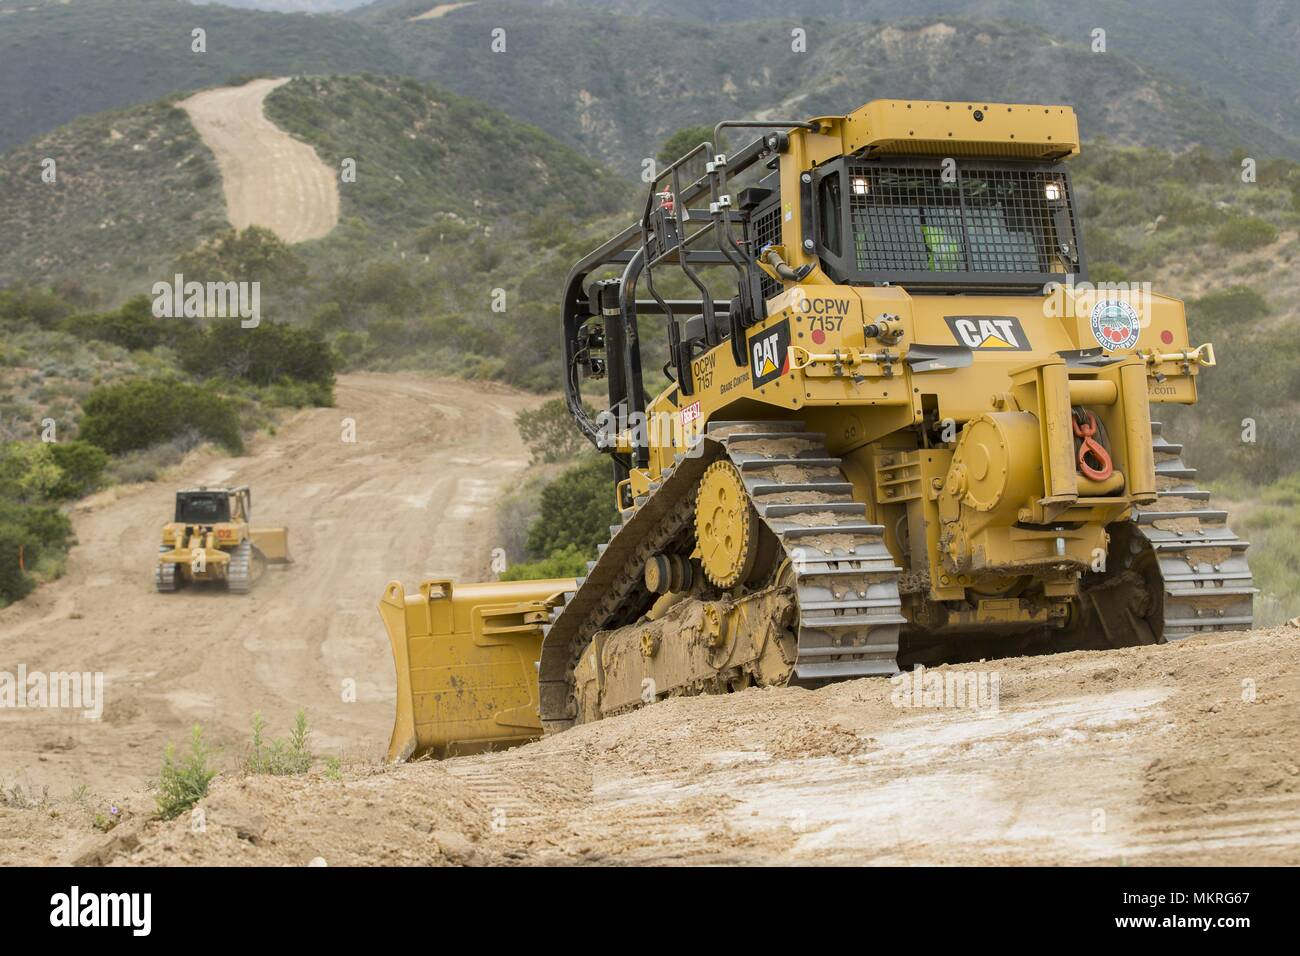 Camp Pendleton, CAL Fire, and Orange County Firefighters excavate fire breaks for the second day in a row during joint operations on Camp Pendleton, Calif. May 1, 2018, May, 2018. The goal is to establish 38 miles of a total 164 miles of firebreaks used to keep fires from leaving the installation and damaging property on and off base for the rest of the fire season. Neighboring Fire Departments use Camp Pendleton's fire fighting operations as a resource for training and improving tactics that they wouldn't otherwise implement. (U.S. Marine Corps photo by Lance Cpl. Betzabeth Y. Galvan). () - Stock Image